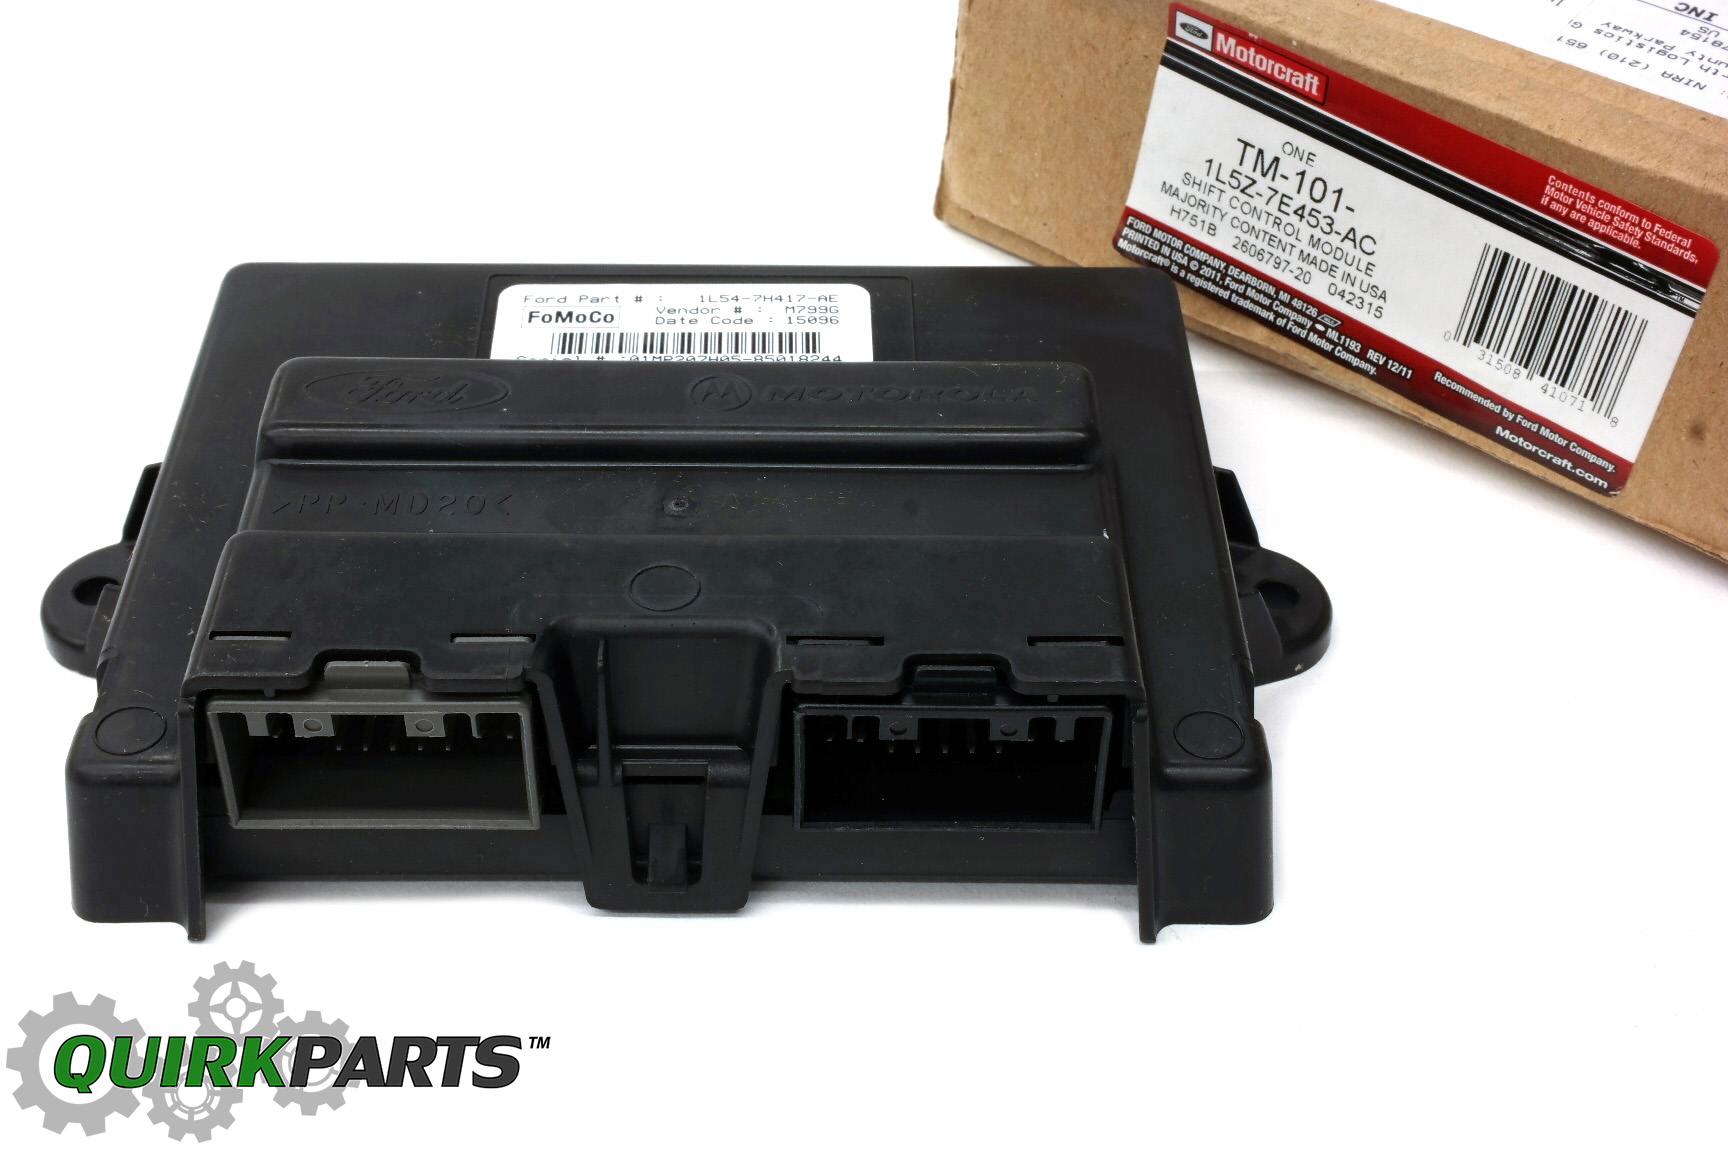 hight resolution of ford ranger explorer sport trac 4x4 transfer case shift control module oem tm101 ford 1l5z 7e453 ac quickparts